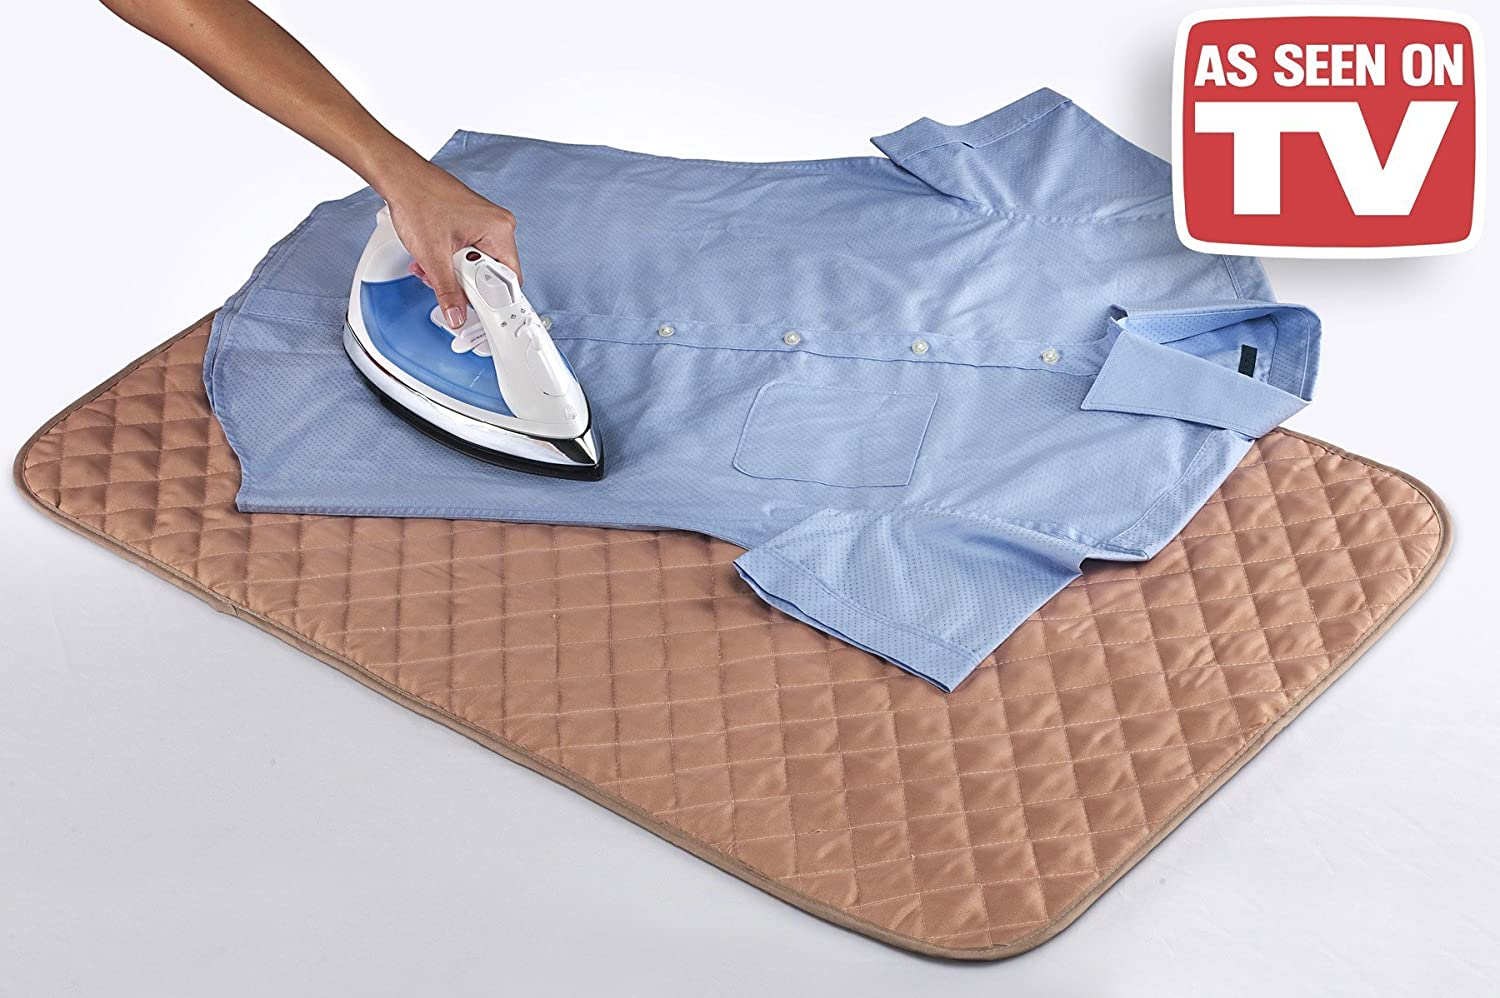 As Seen on TV IRONEMO-MC24 Iron Express the Original Portable Ironing Pad